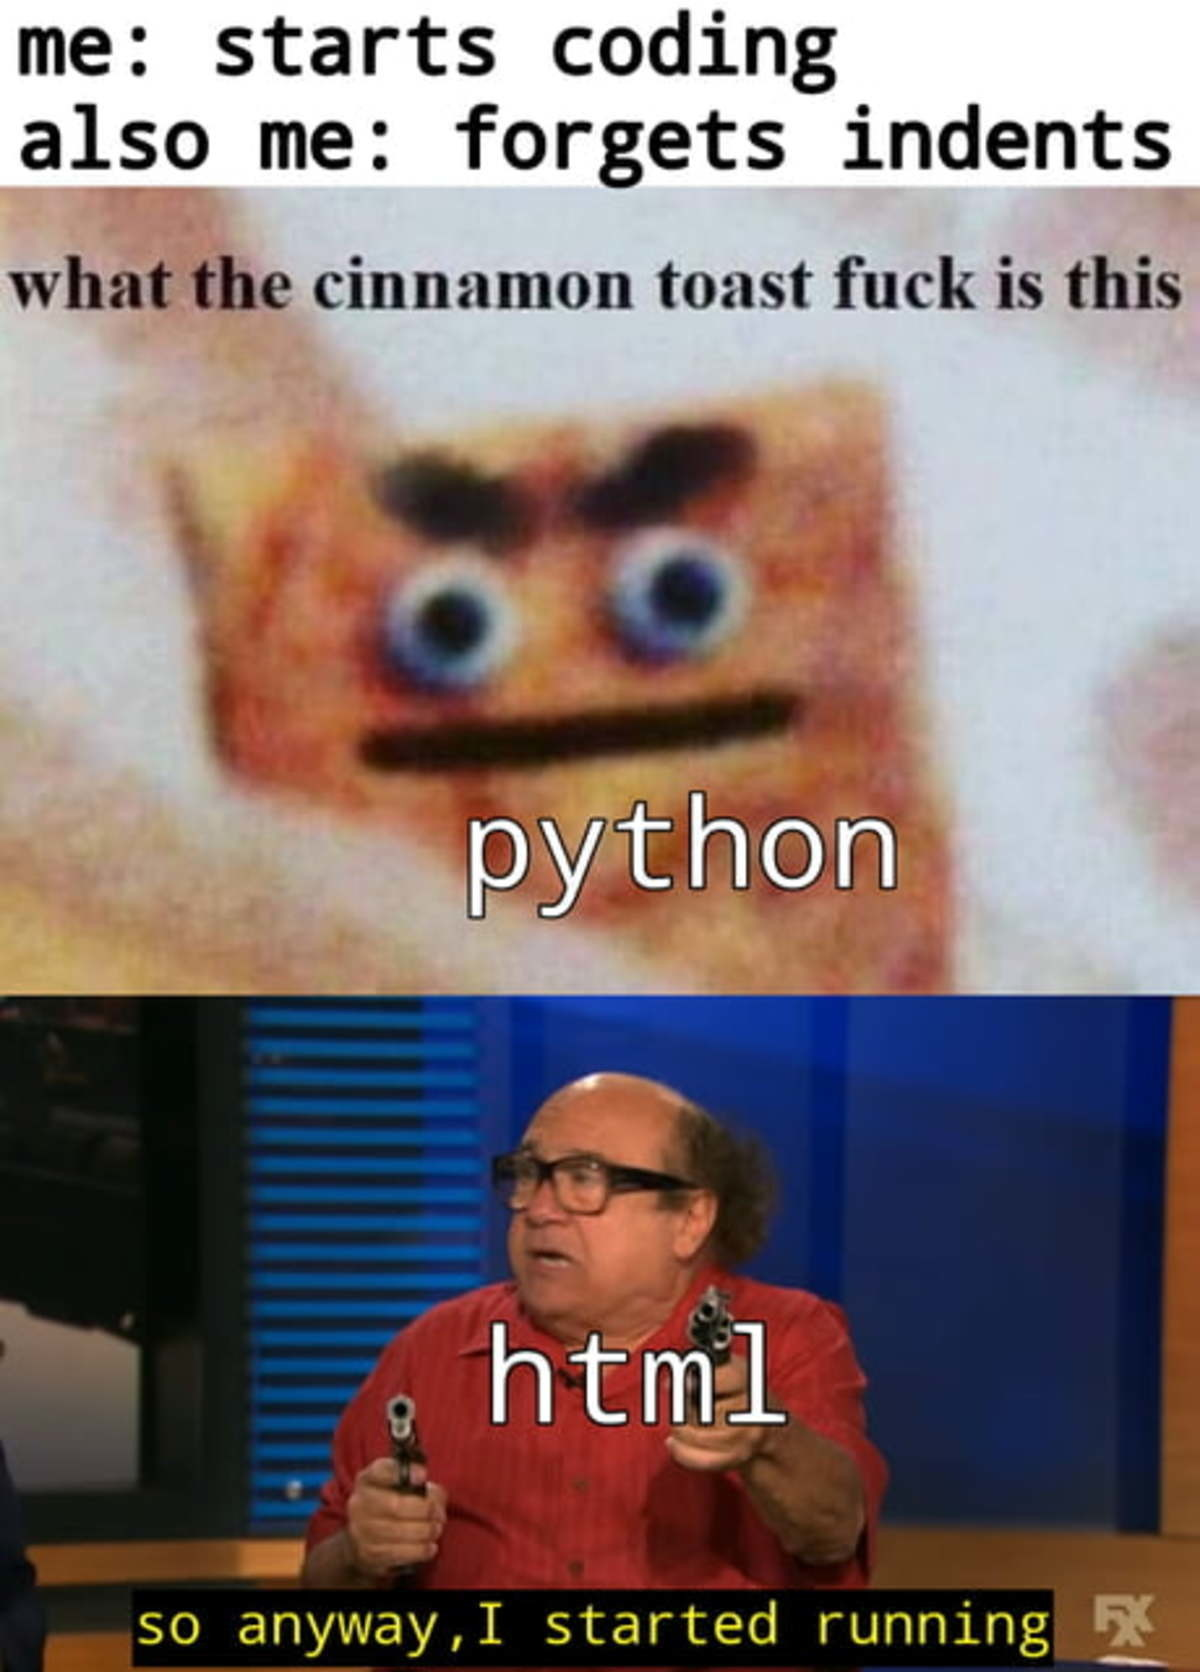 tangy normal malicious Kim Jong Un. .. c++ = I'm running, but even you don't know why.